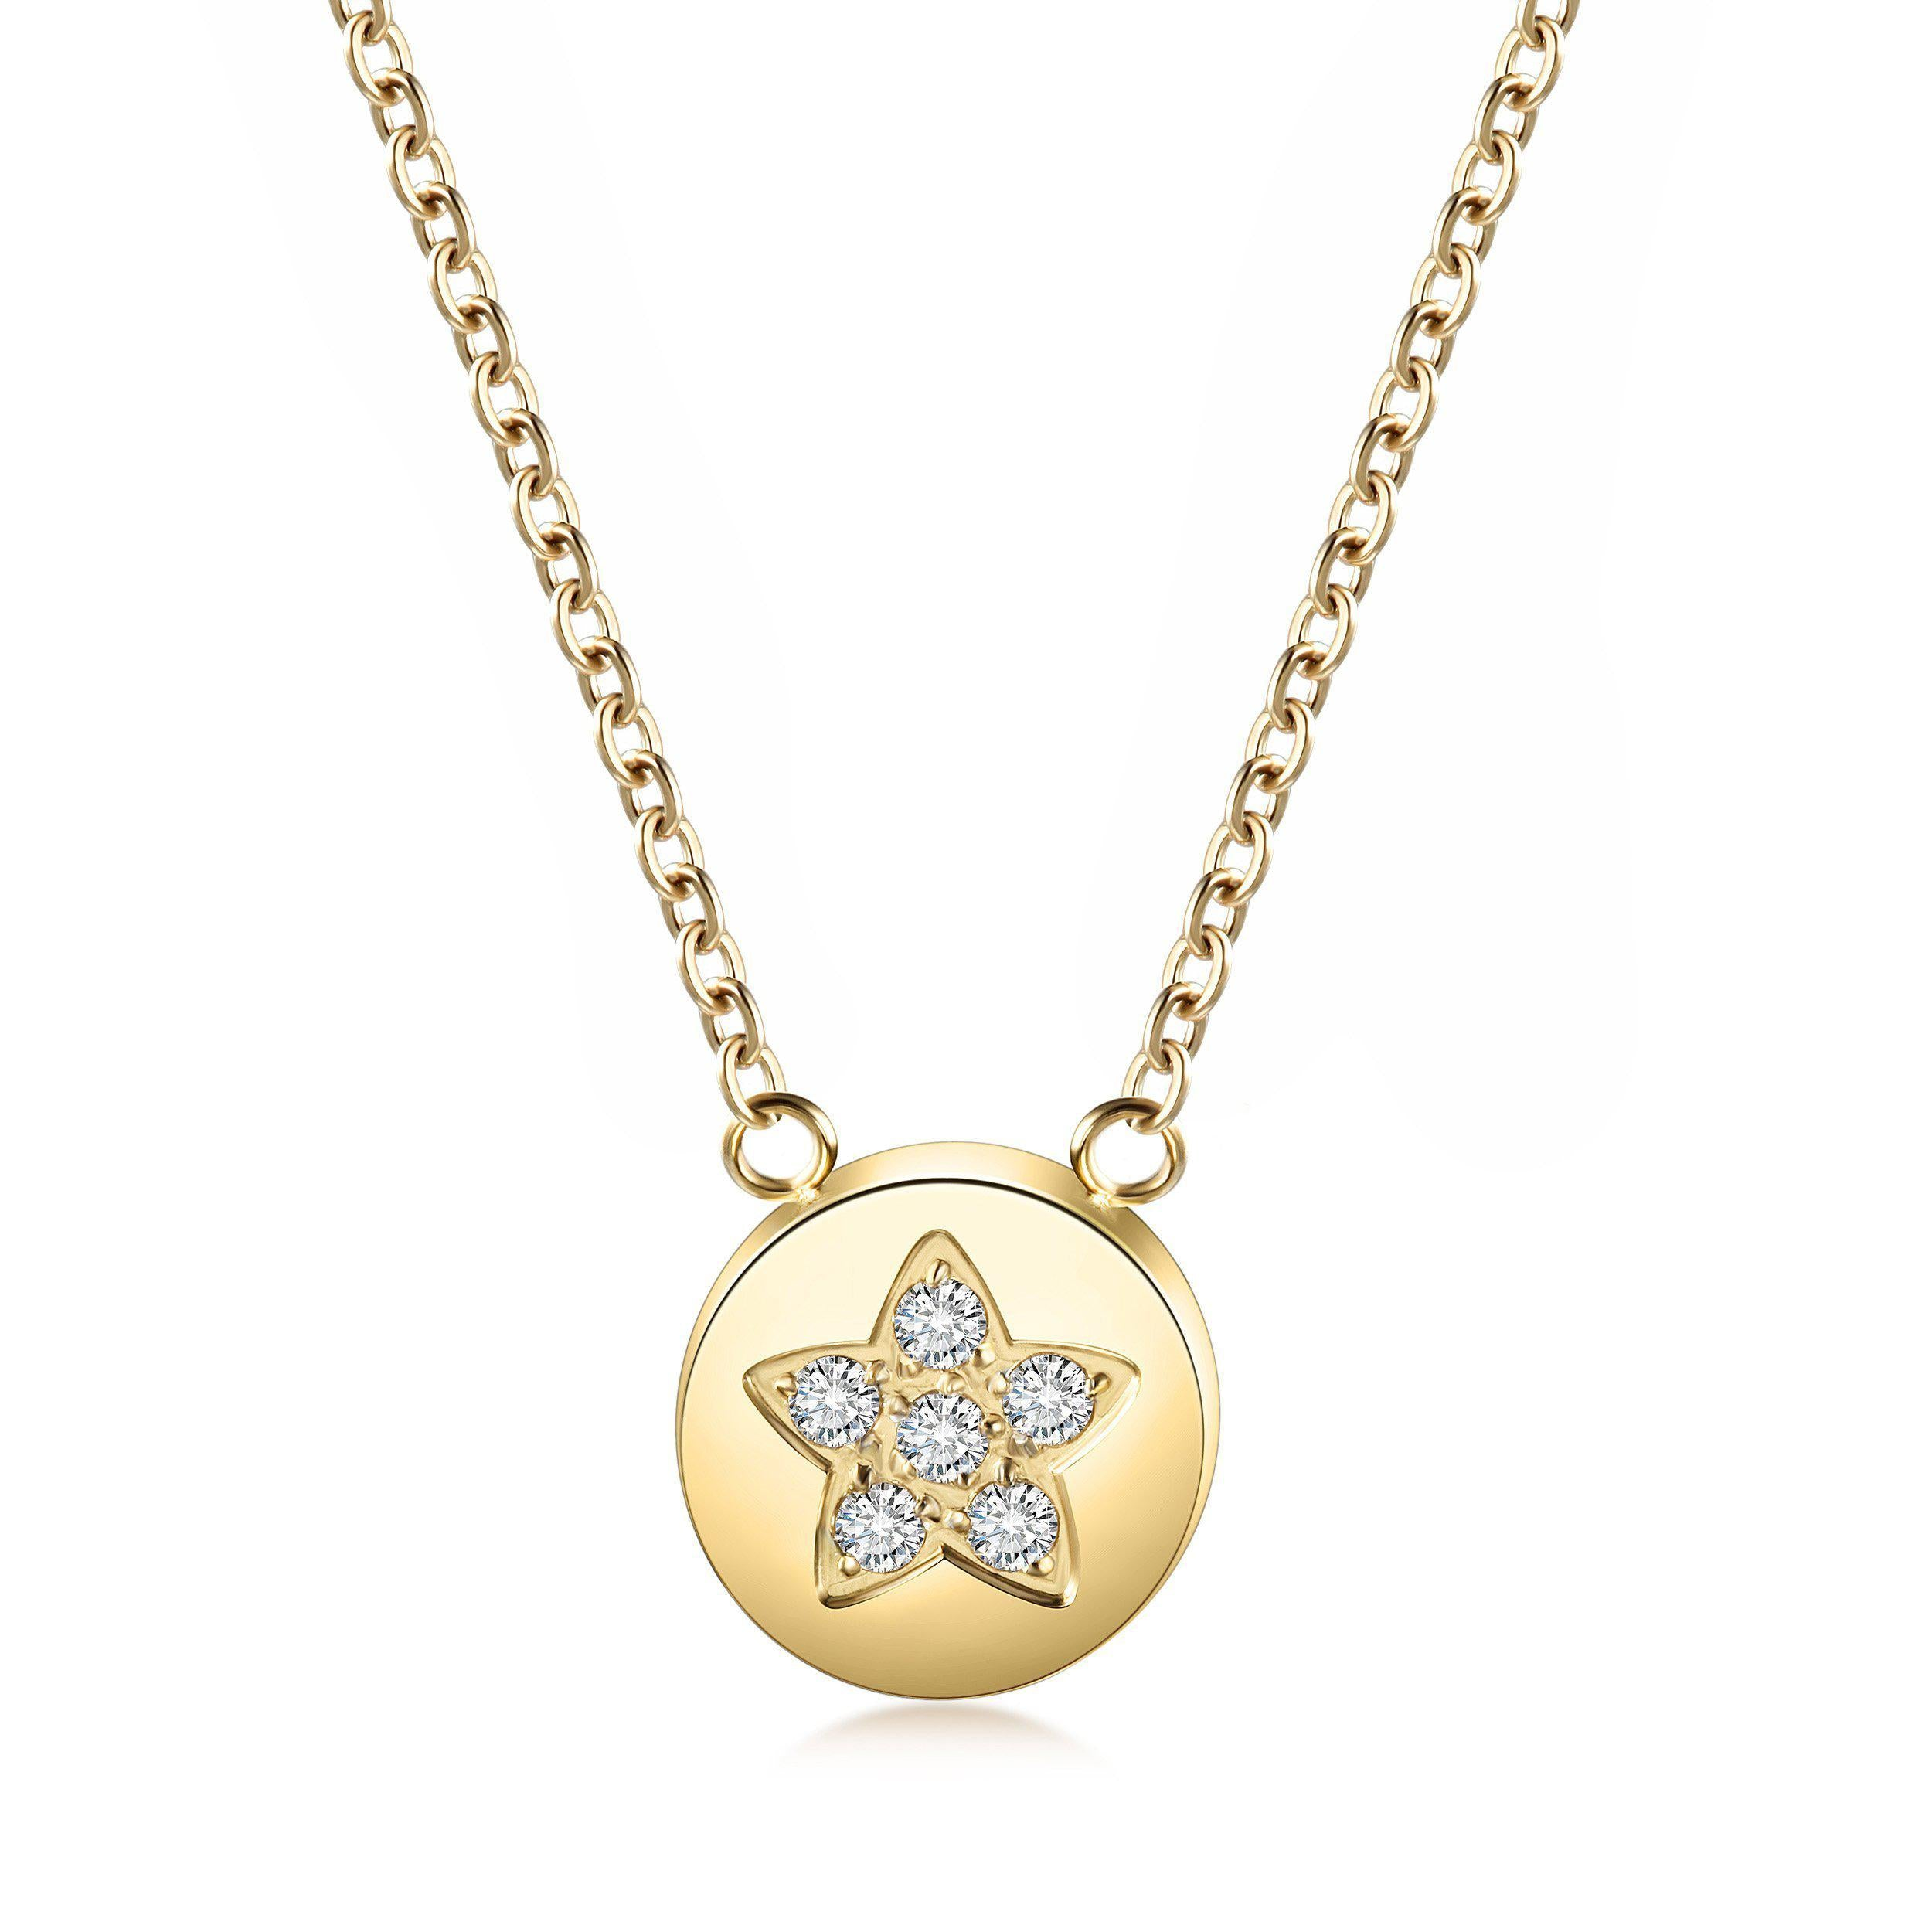 Star Shaped Disc Pendant Necklace-Women Necklace-Gold as Ice